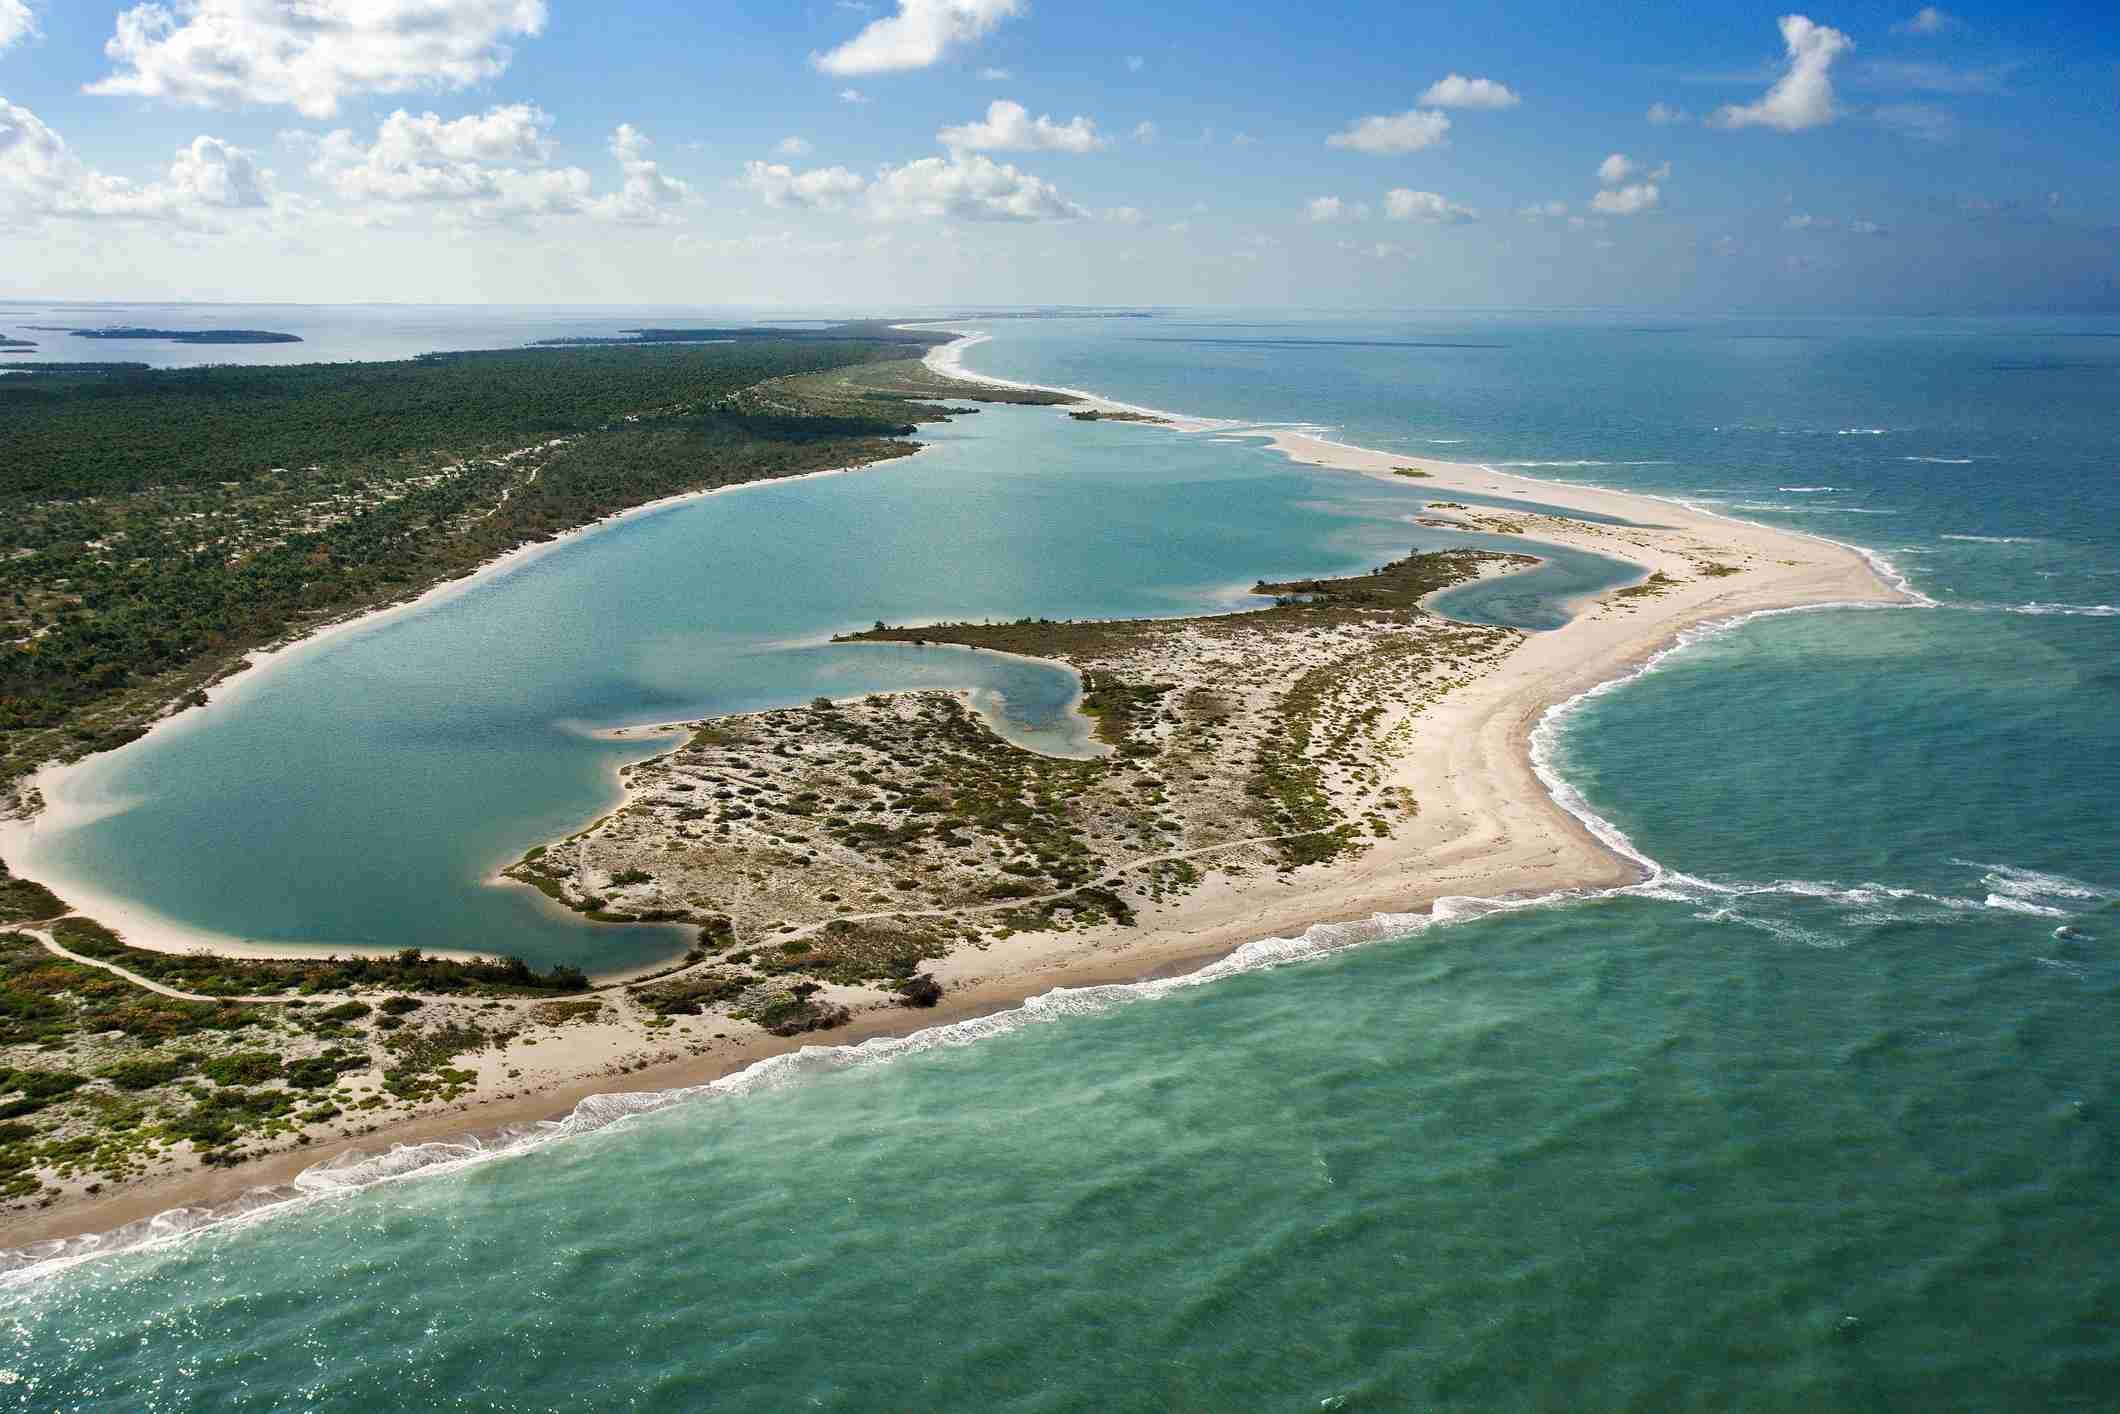 Aerial view of Cayo Costa State Park, Florida Keys